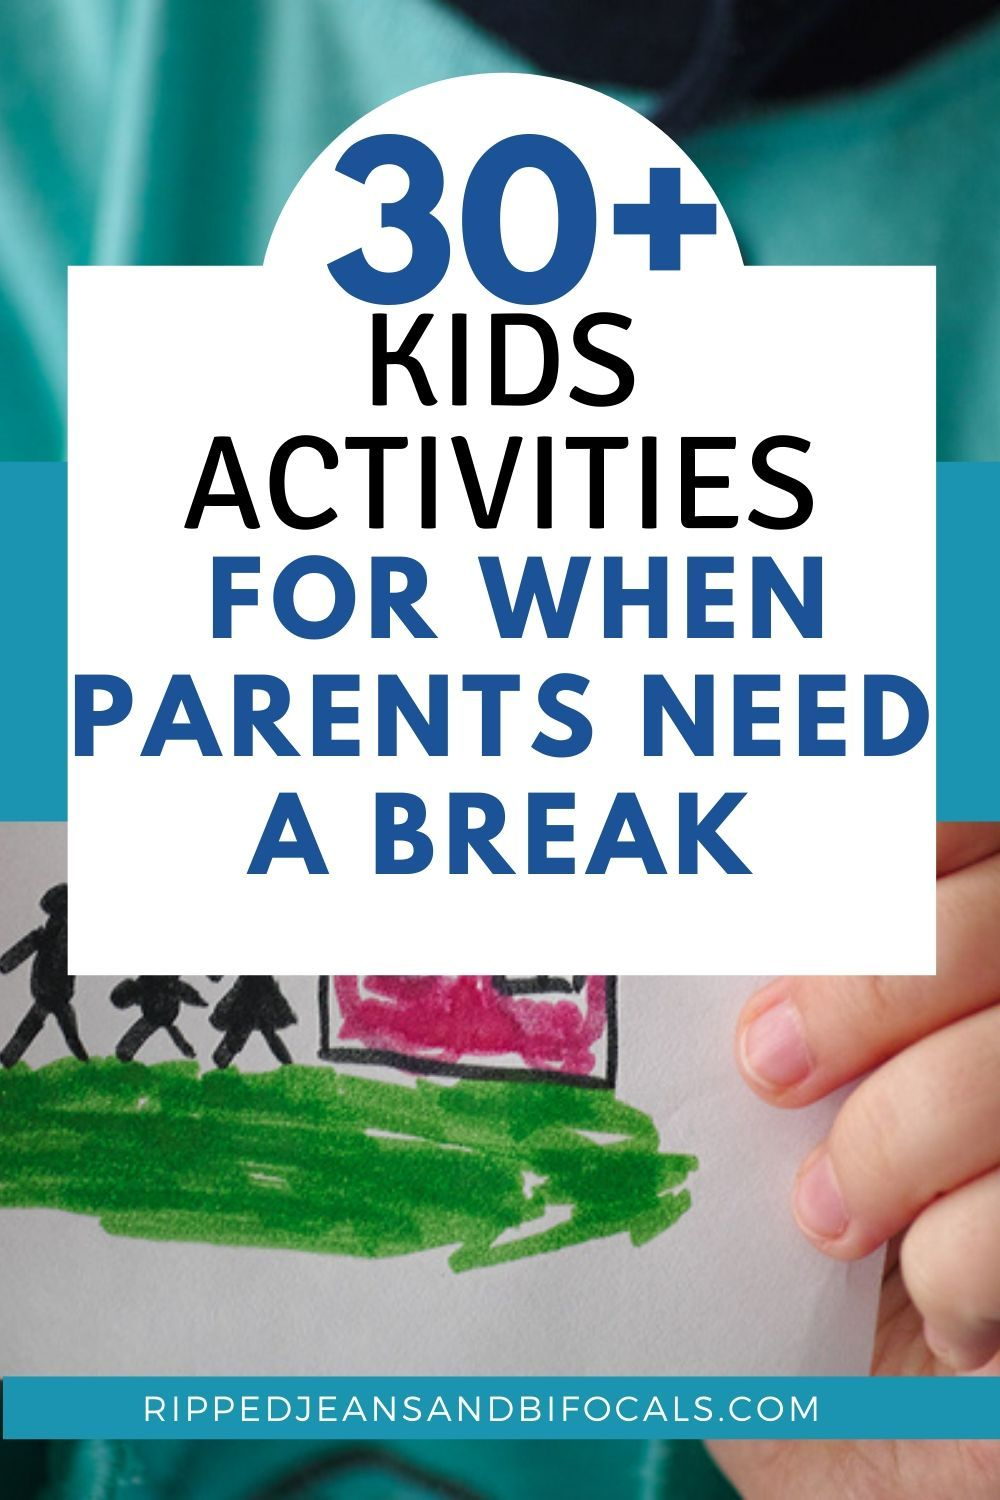 Photo of 30+ activities for kids for when parents need a break